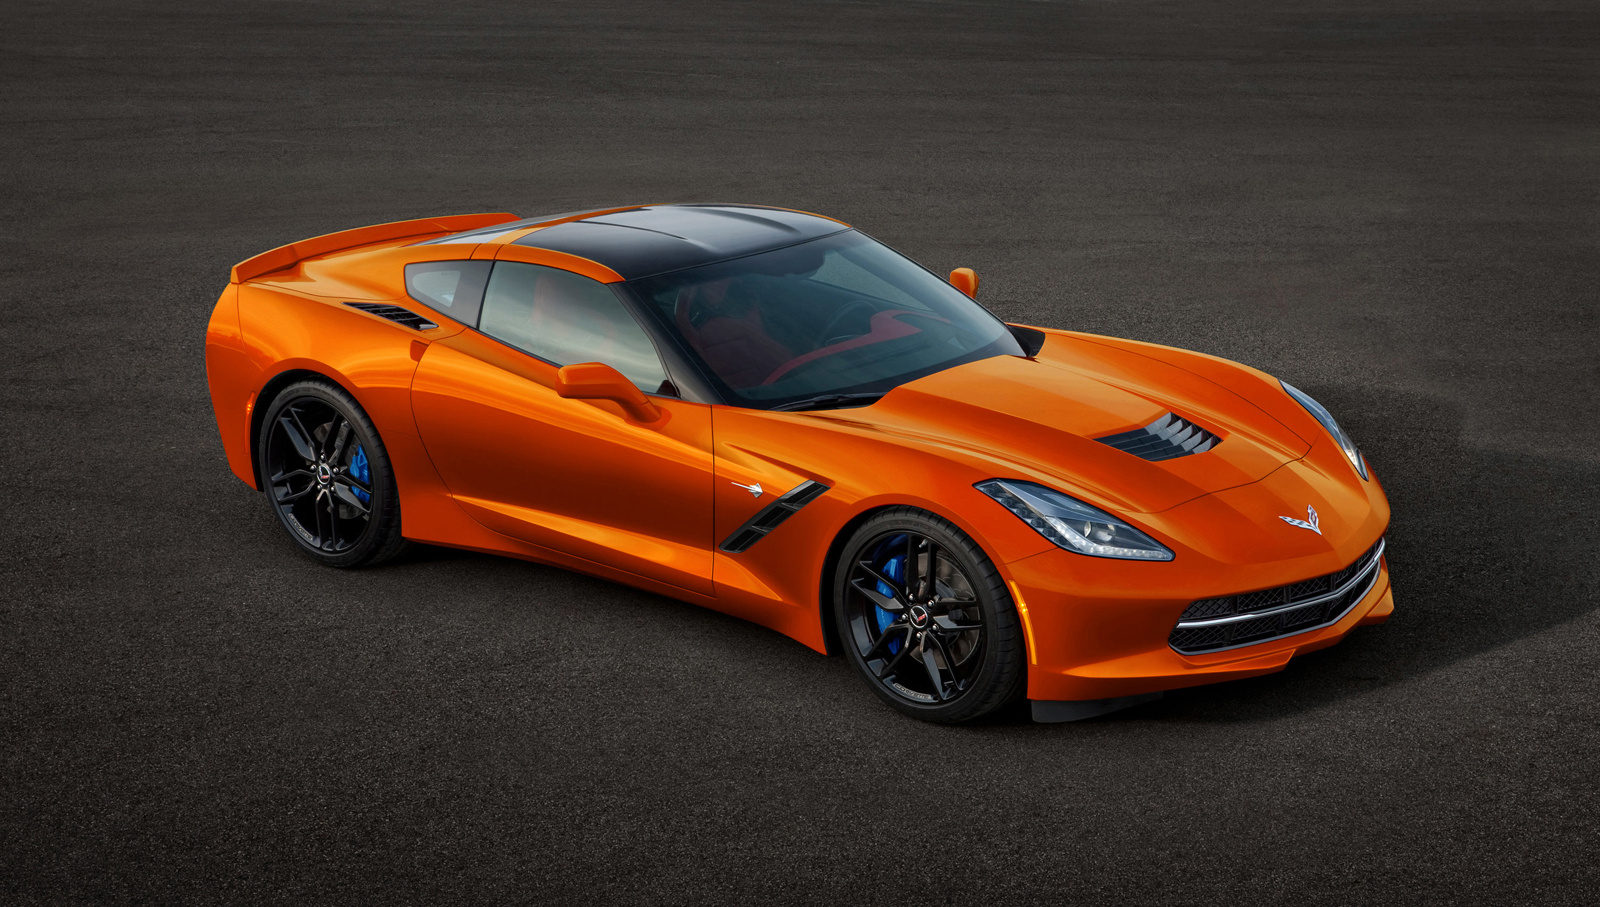 2014 chevrolet corvette stingray in all colors gtspirit. Cars Review. Best American Auto & Cars Review